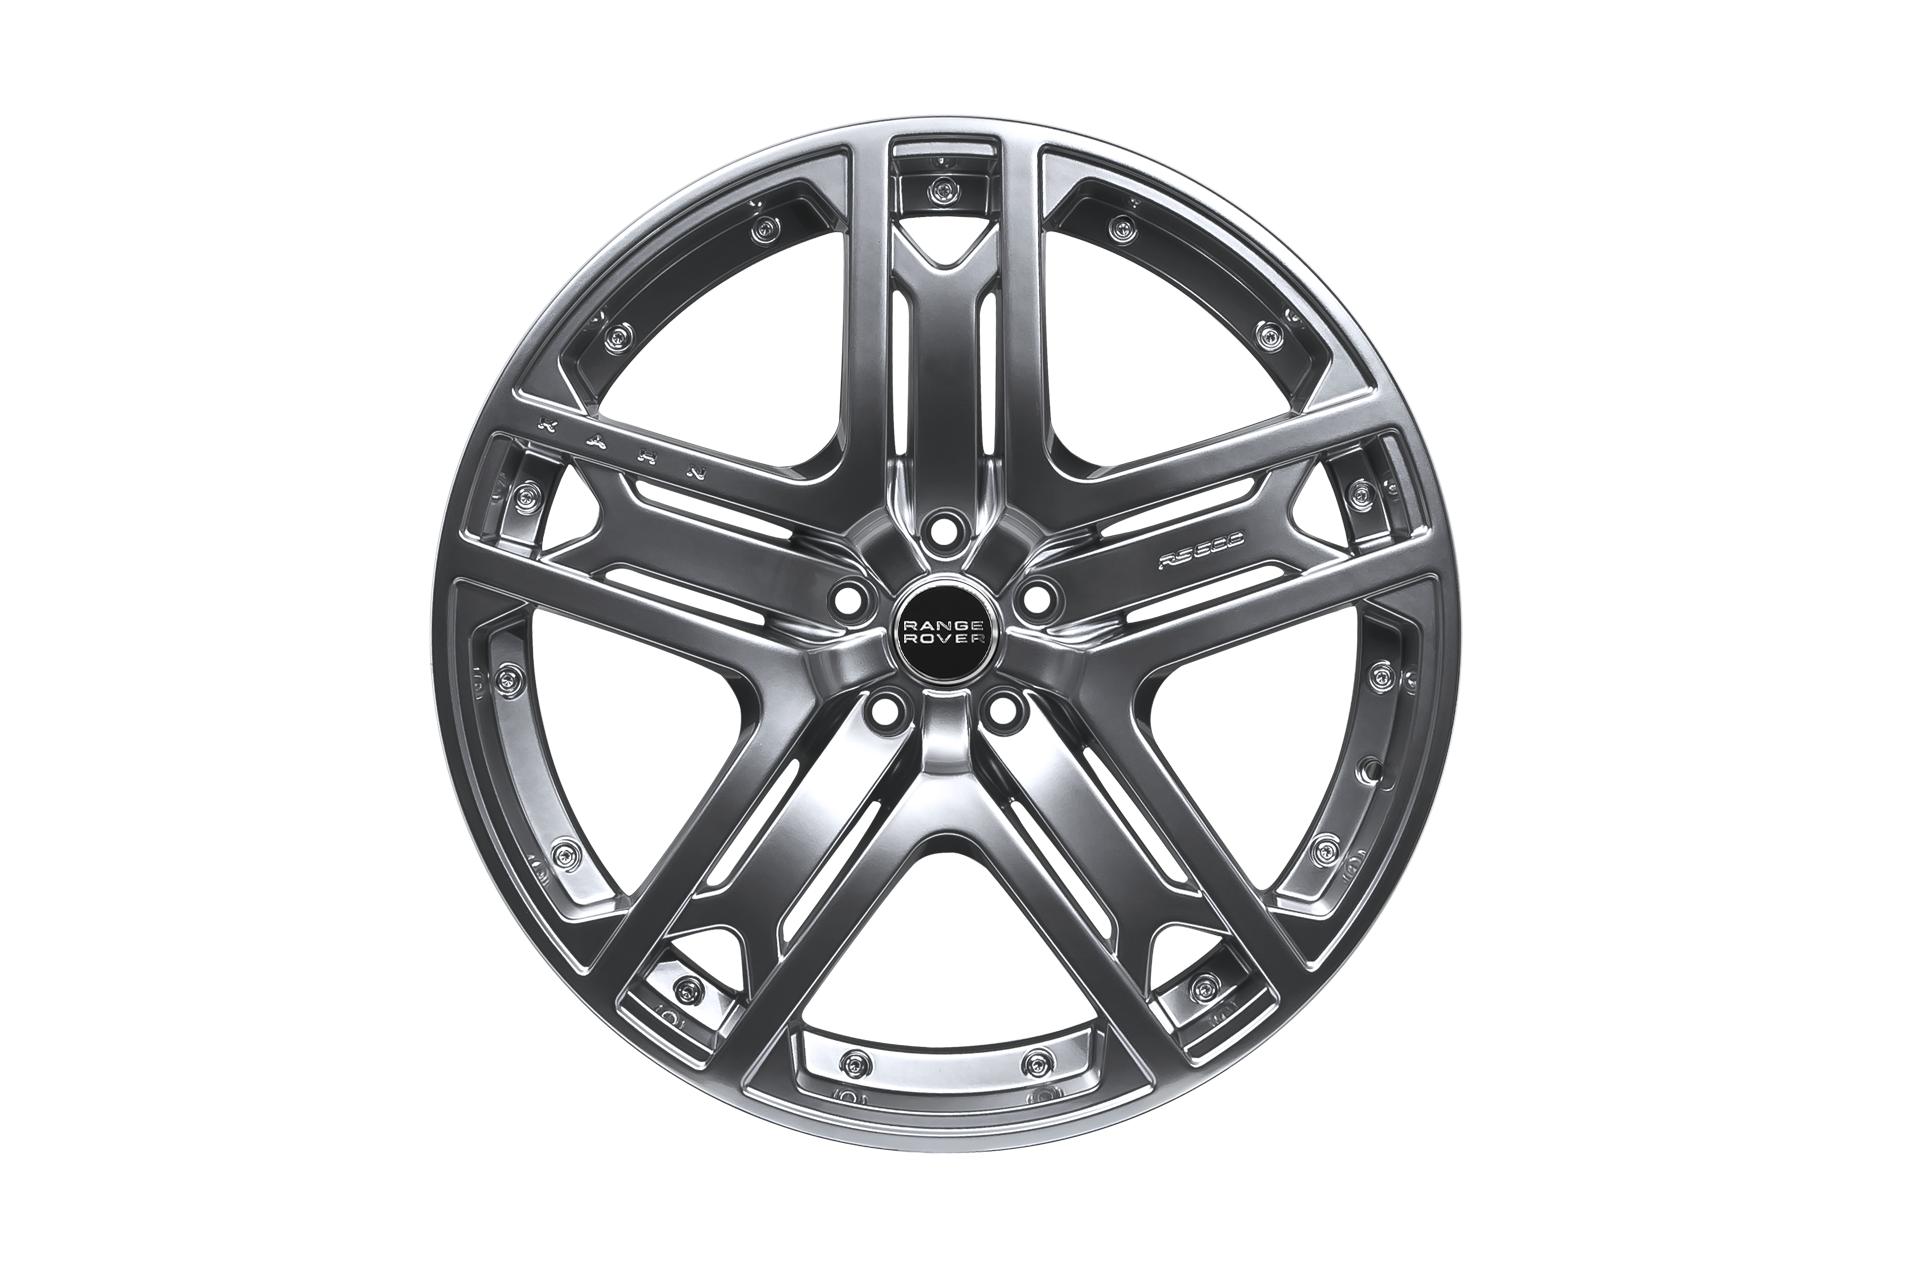 Range Rover (2009-2012) Rs600 Light Alloy Wheels by Kahn - Image 3669